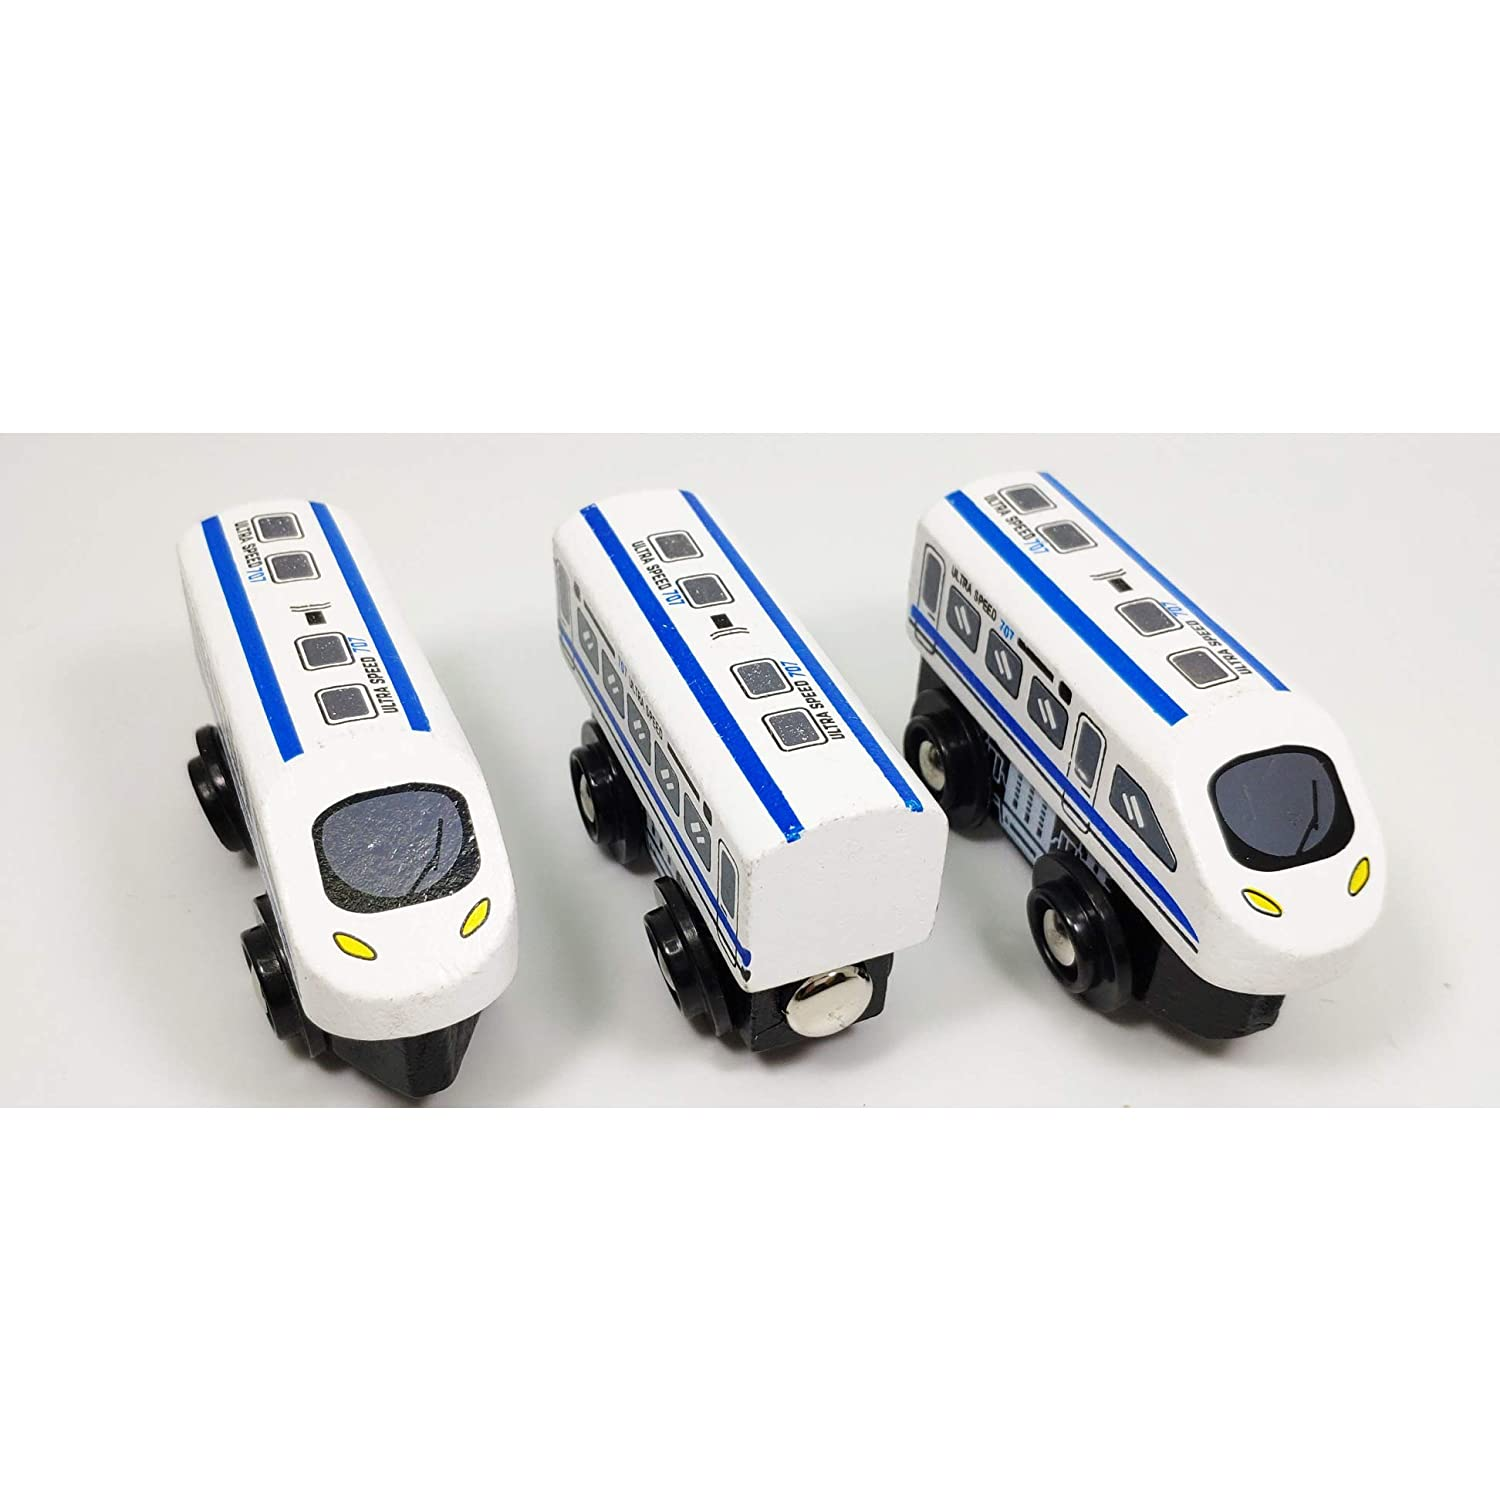 SUKRAGRAHA Wooden Train Set 3pc Shinkansen Magnetic Toy Train Sets for Kids Toddler Boys Girls Compatible with Thomas Tracks and Major Brands